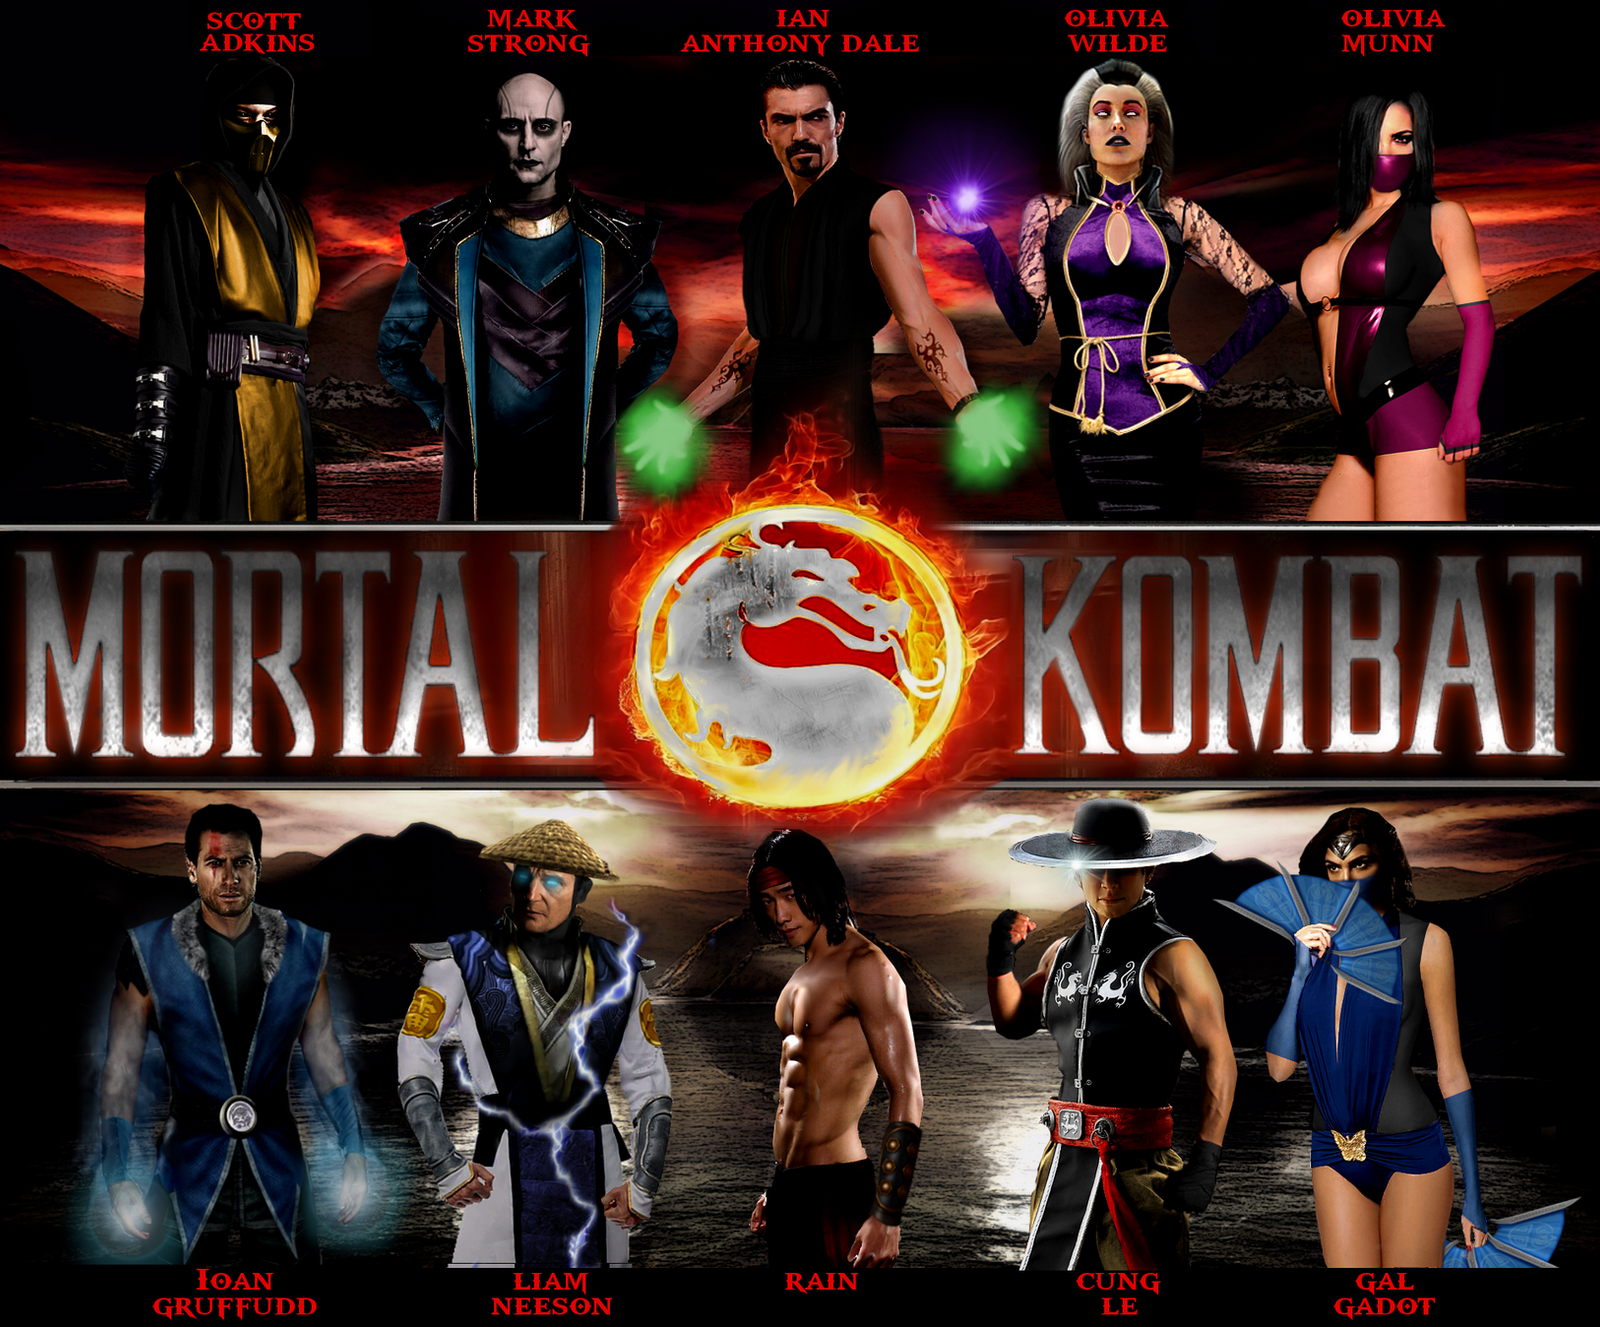 Mortal Kombat Movie (2014) by Tony-Antwonio on DeviantArt